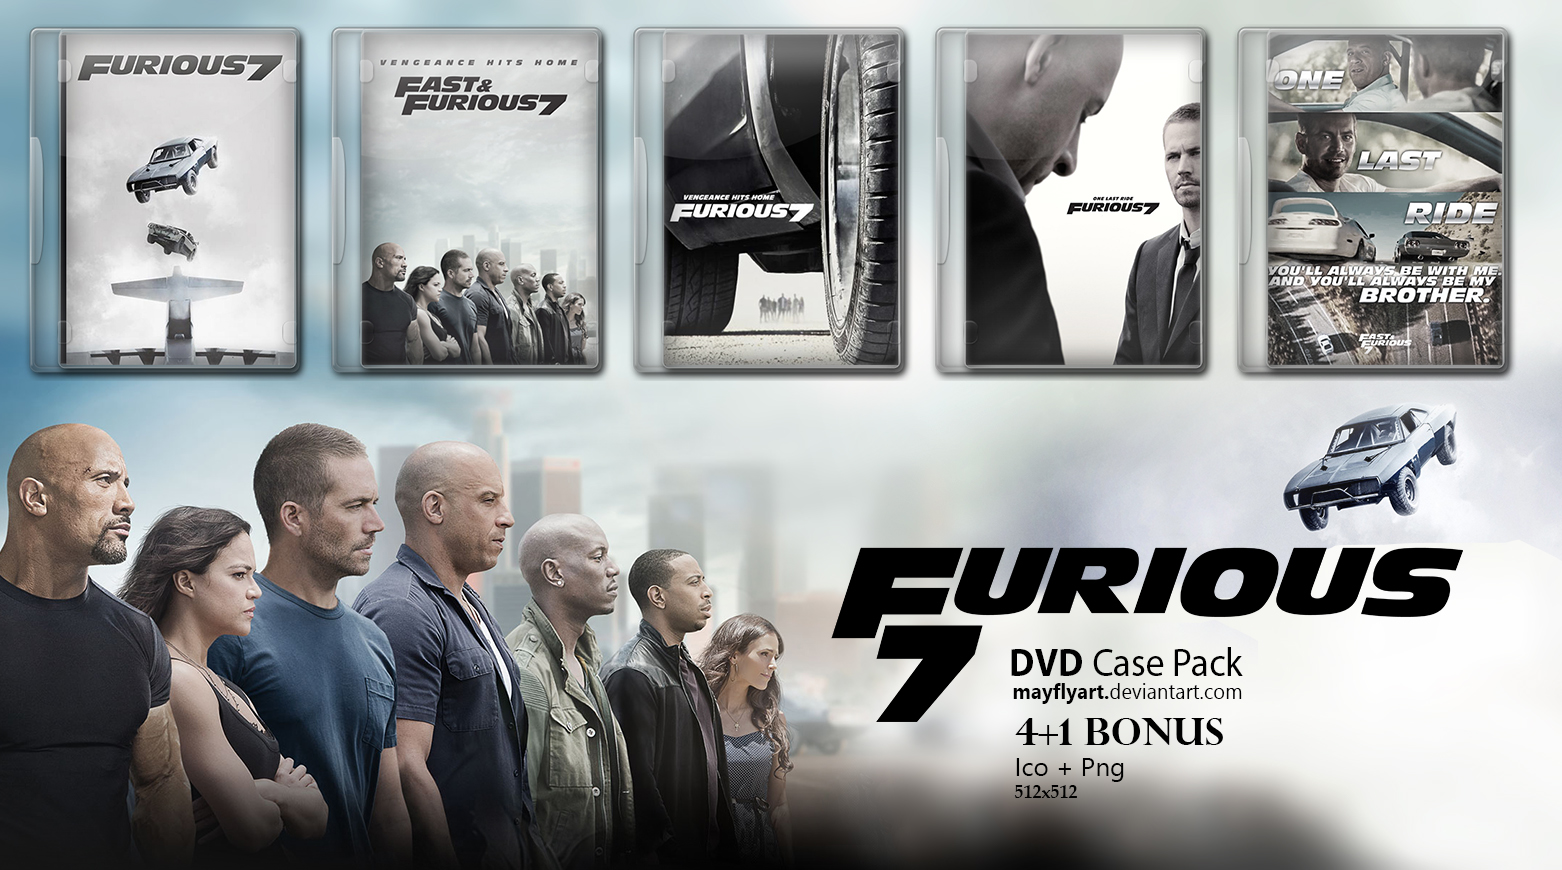 Furious 7 DVD Case Pack by MayFlyArt on DeviantArt